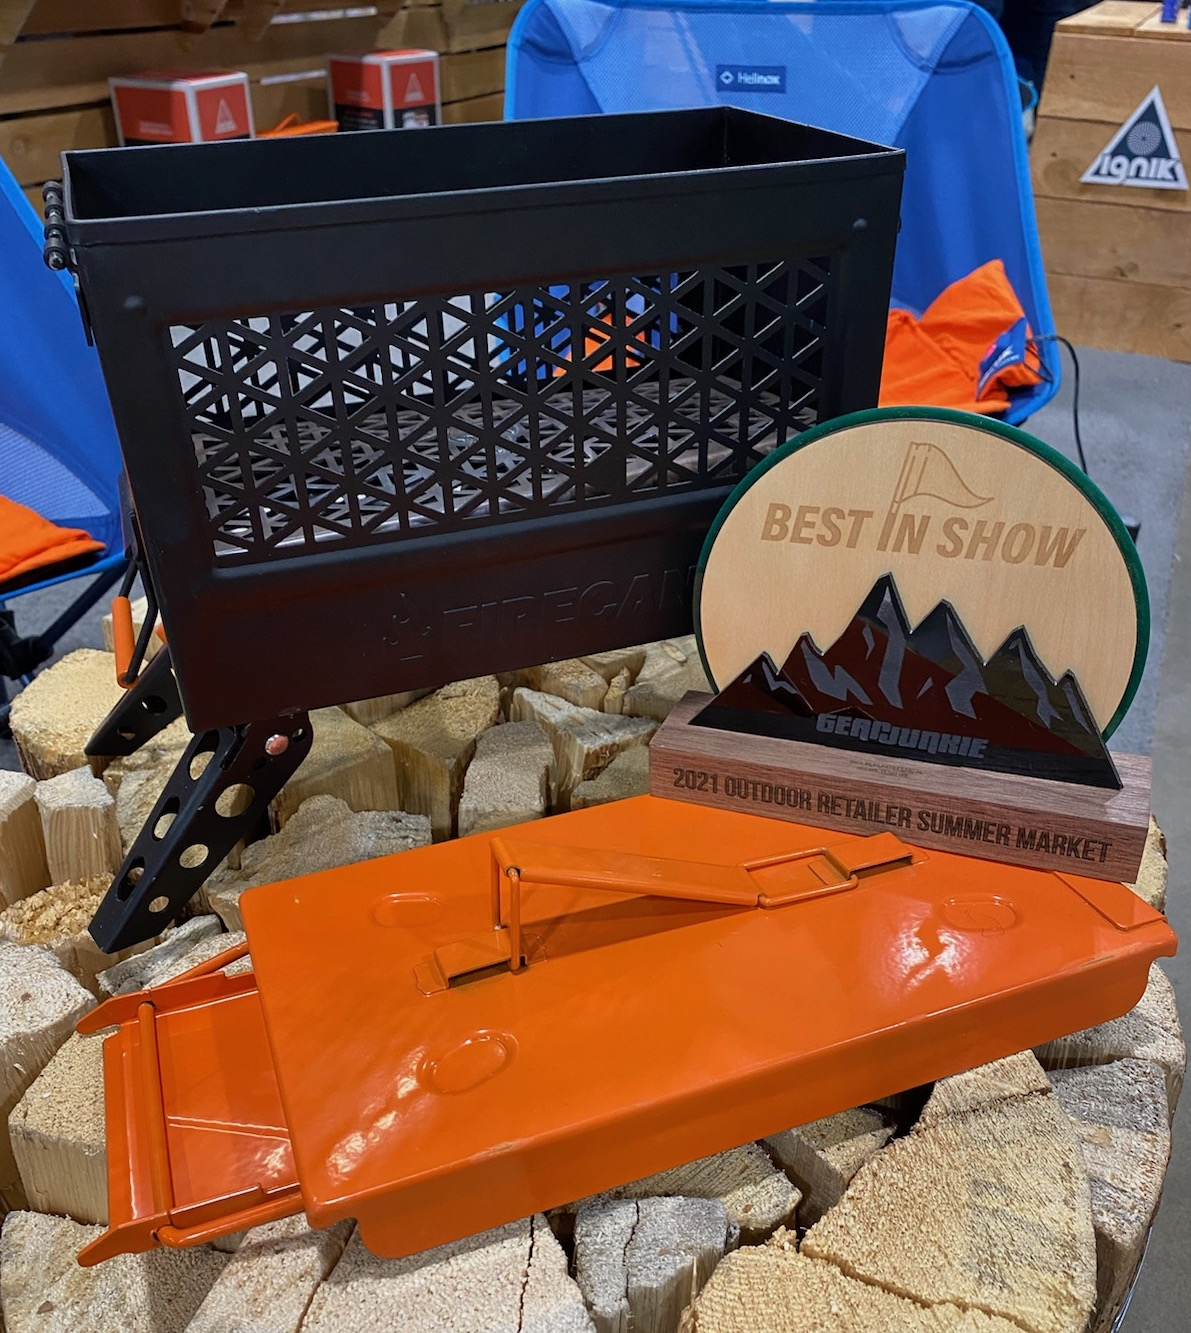 Gear Junkie Best in Show award in front of Ignik black and orange fire can